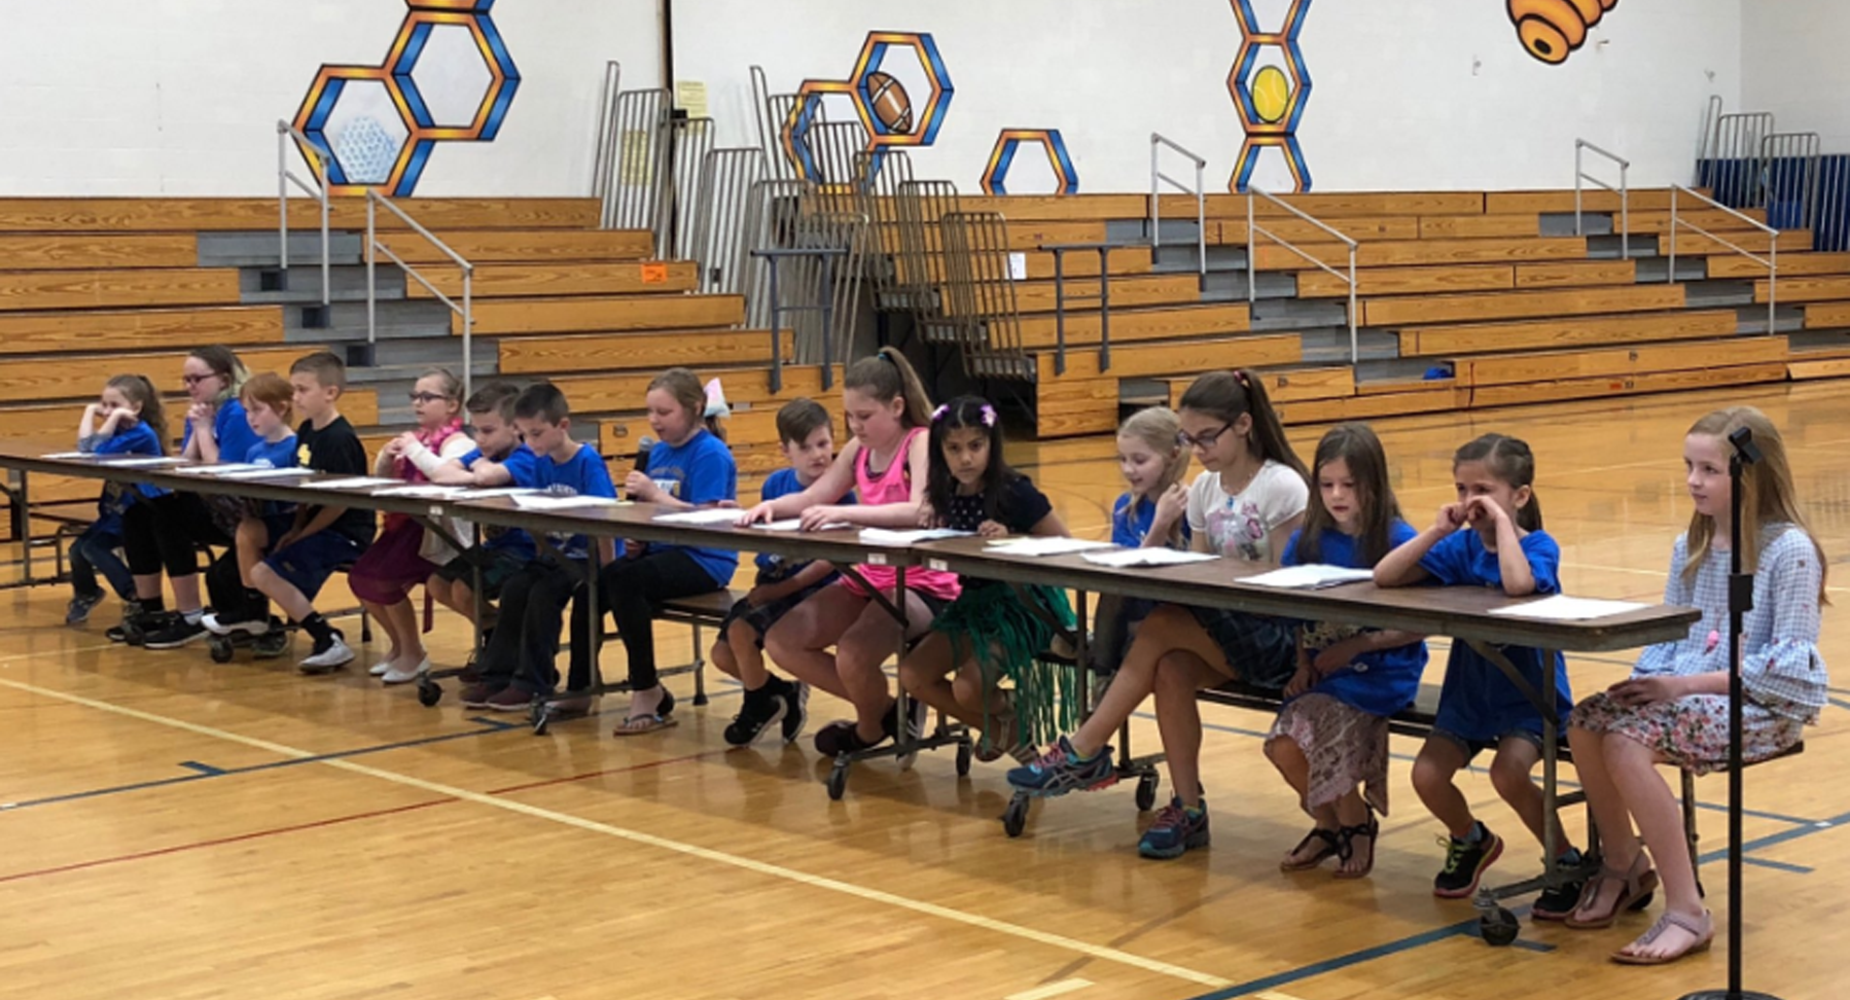 Leadership day, students sitting at a table in gym